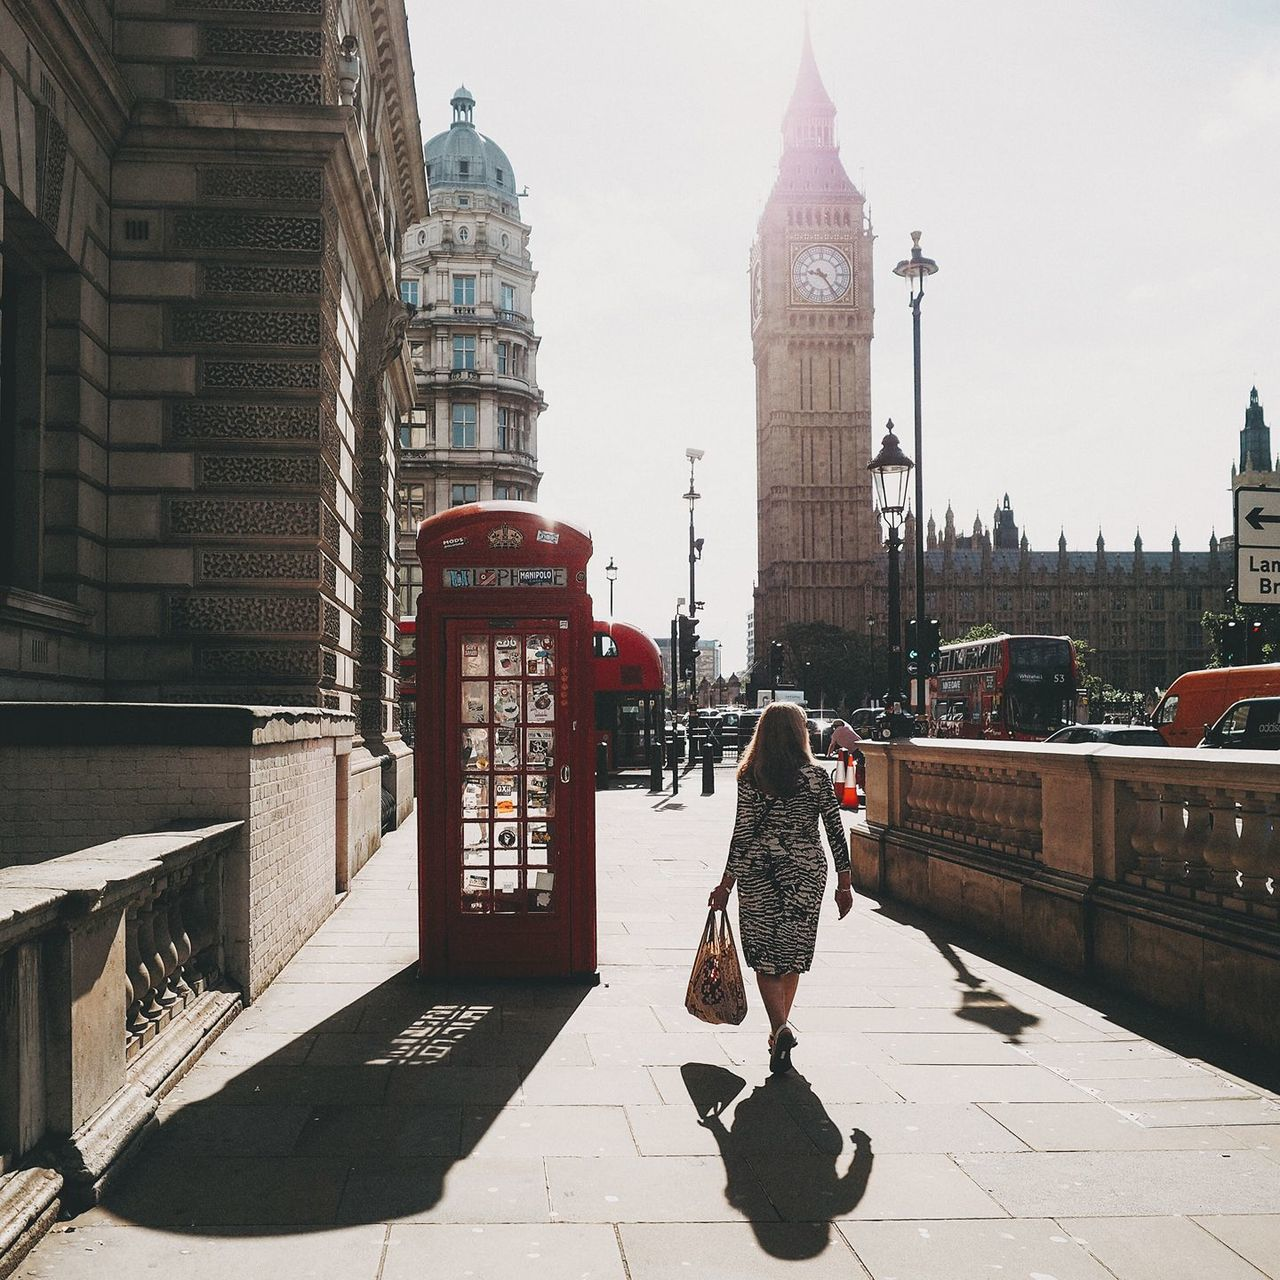 Architecture Big Ben Building Exterior Built Structure City Clock Tower Day Full Length Light Light And Shadow Lighthouse London London Lifestyle LONDON❤ One Person Outdoors Pay Phone People Real People Sun Sunlight Sunset Telephone Booth Travel Destinations Uk Live For The Story